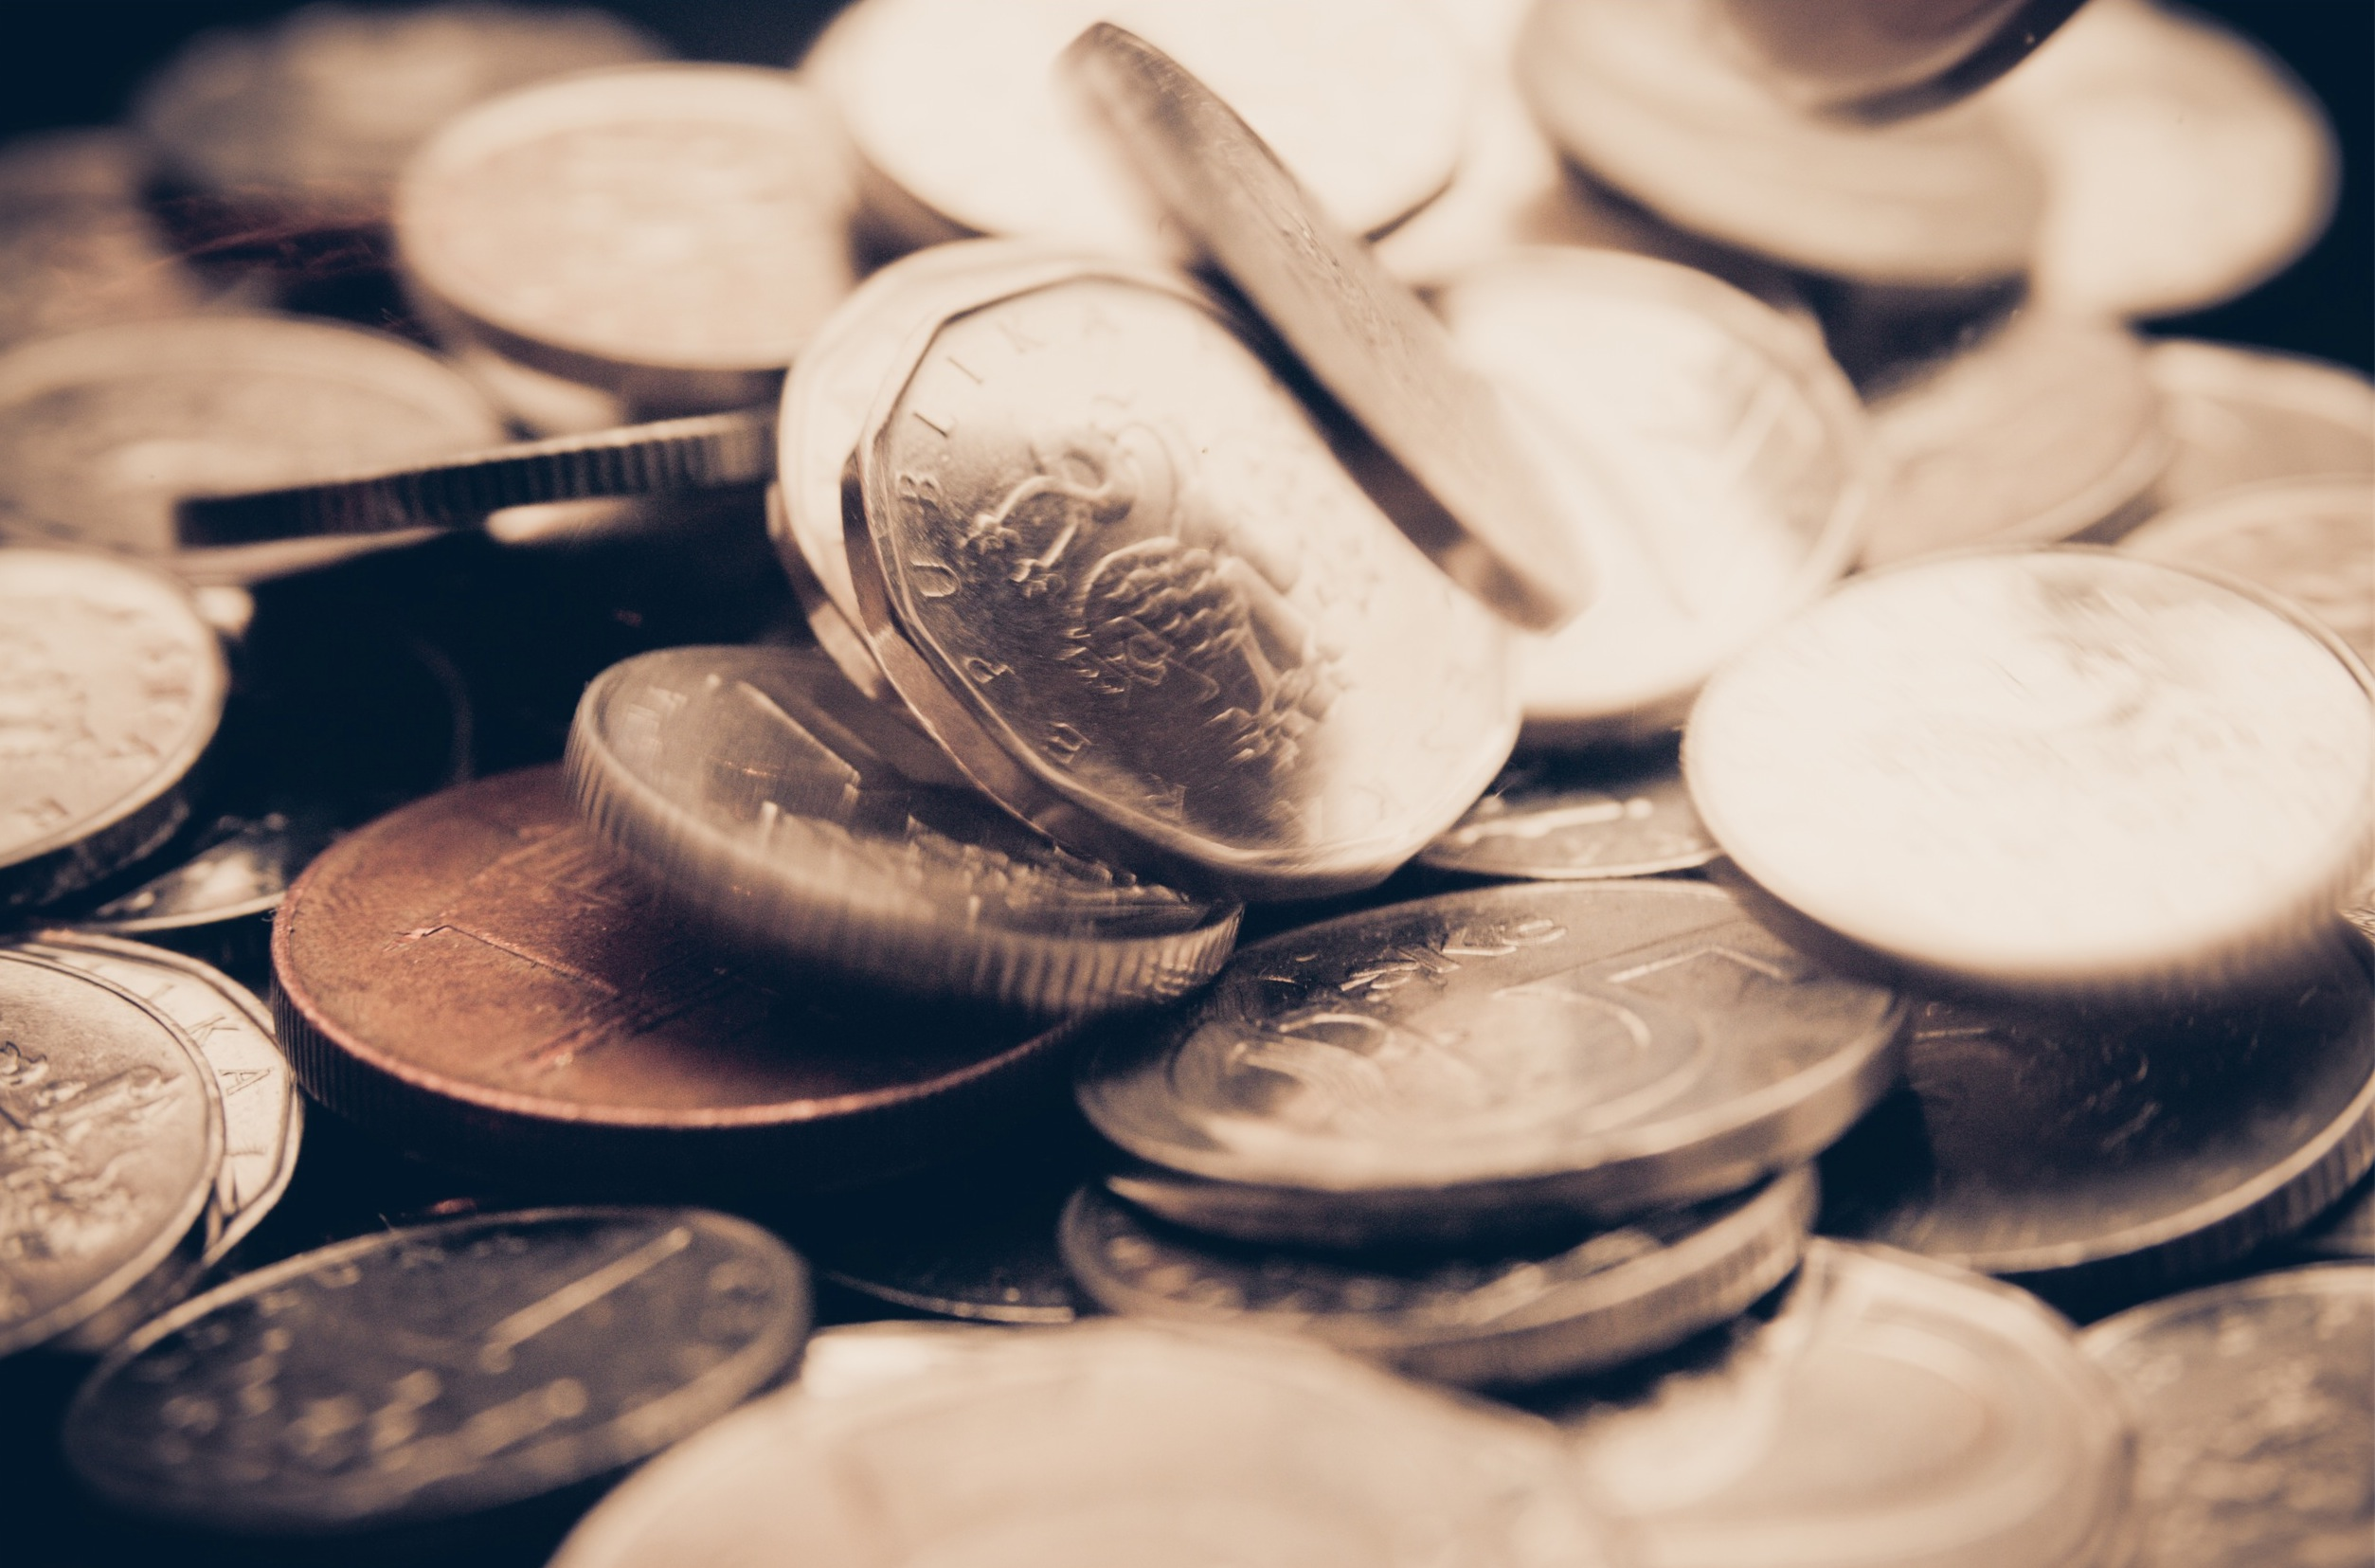 10 Tips For Creating a Successful Crowdfunding Campaign